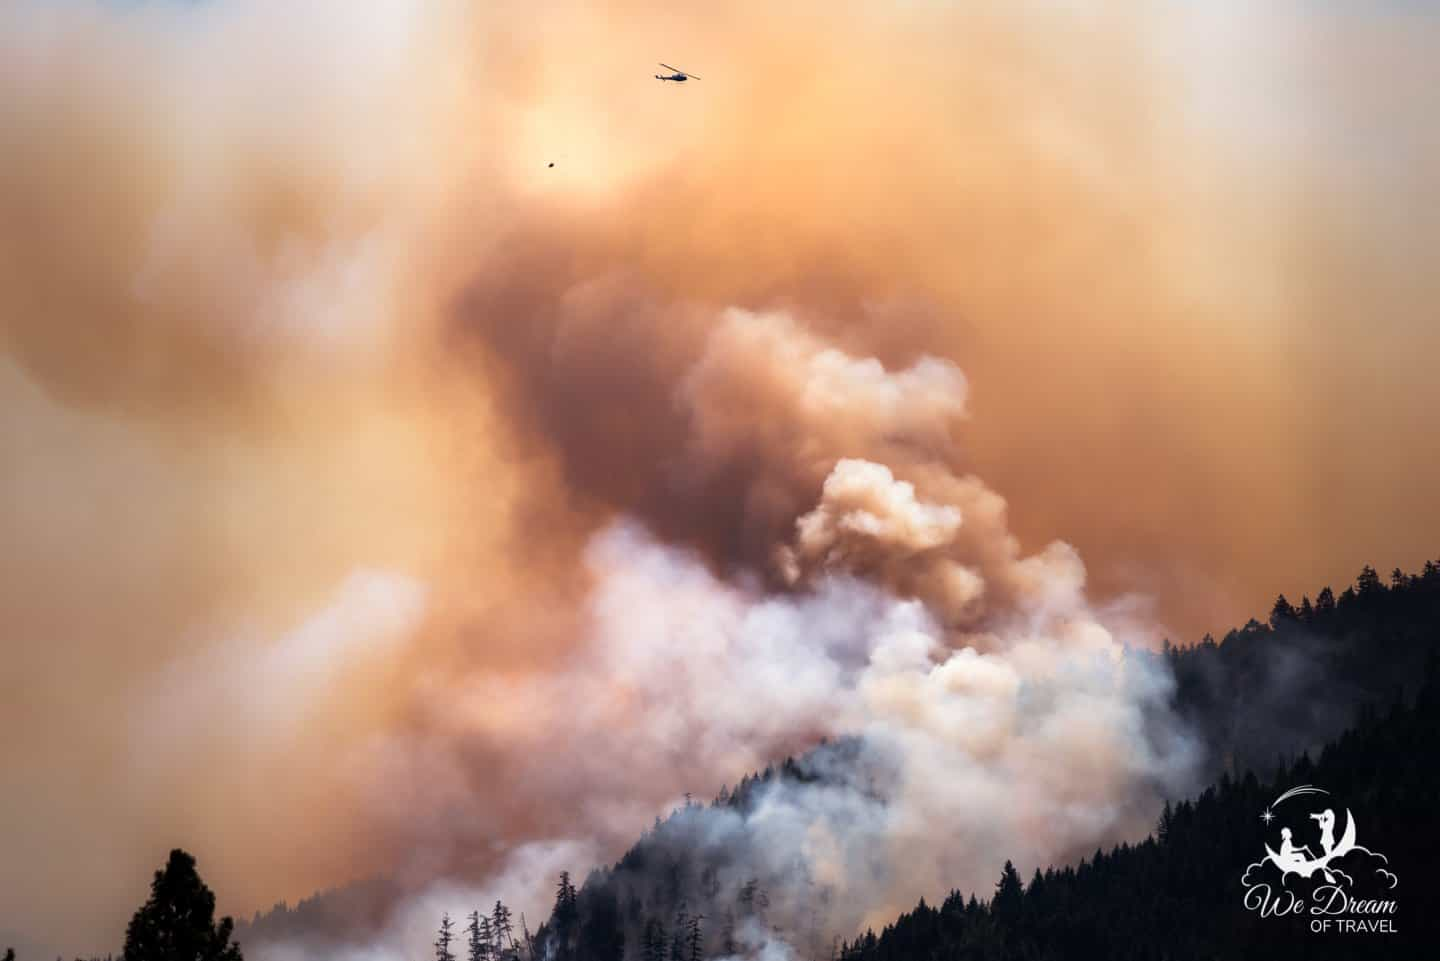 First responders attempt to contain a wildfire in Oregon.